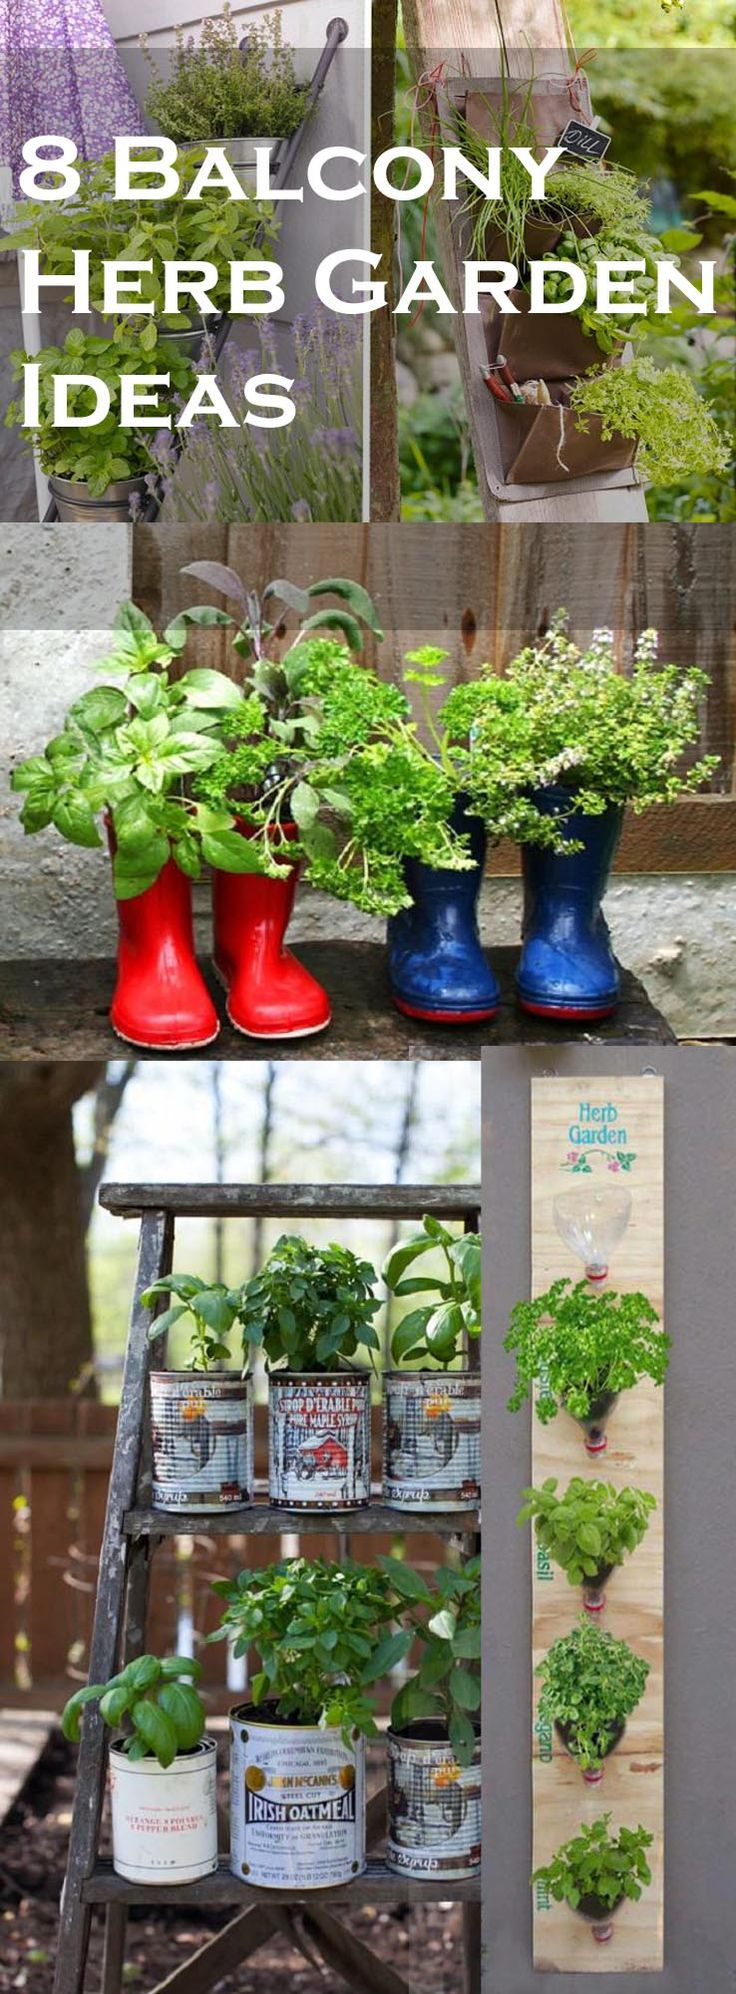 25 Best Ideas About Balcony Herb Gardens On Pinterest How To